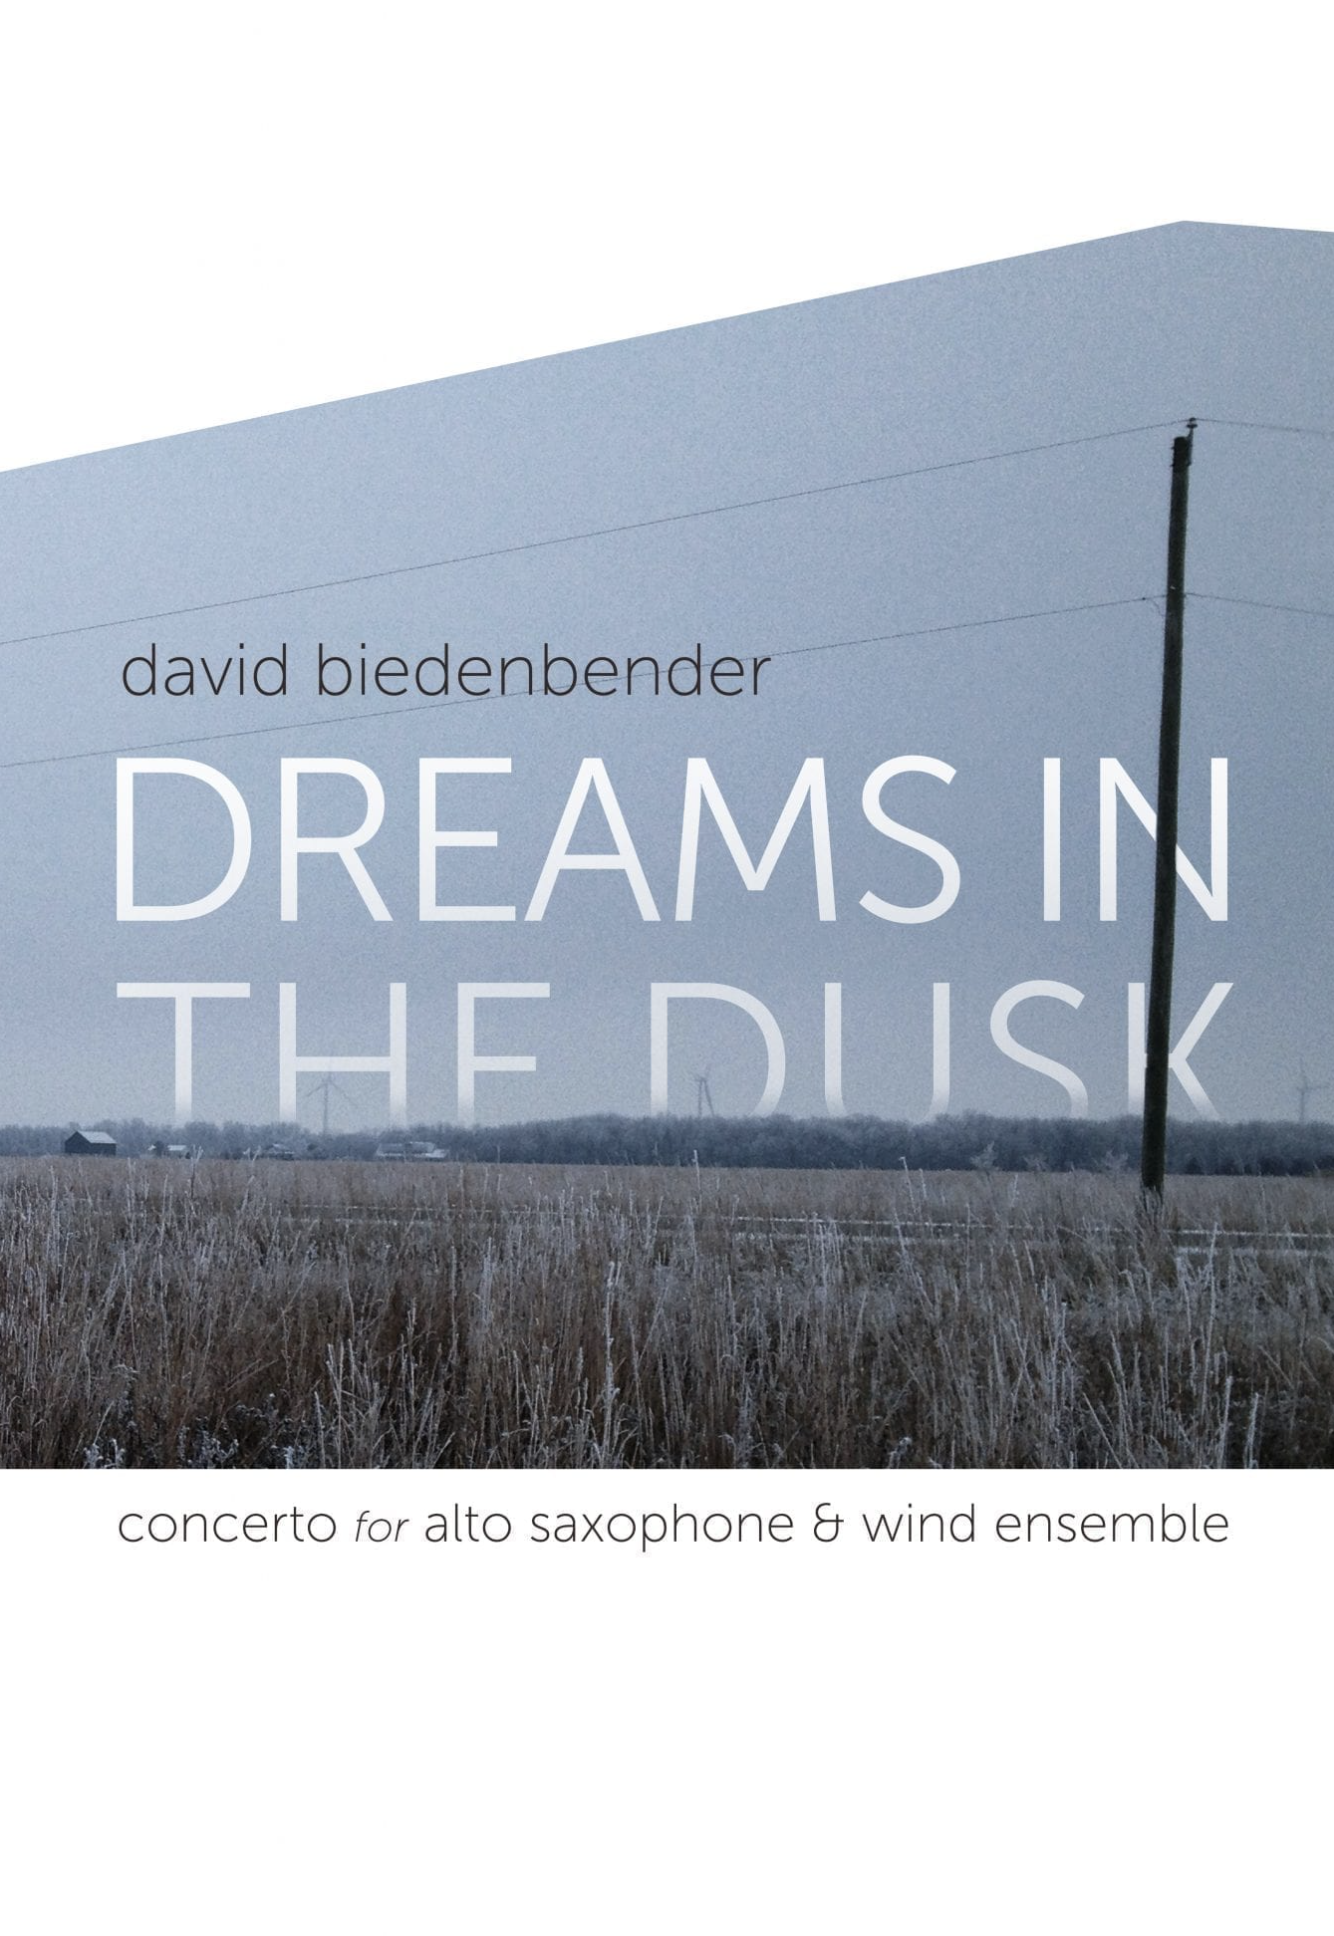 Dreams In The Dusk - Full Concerto For Alto Saxophone And Wind Ensemble by David Biedenbender